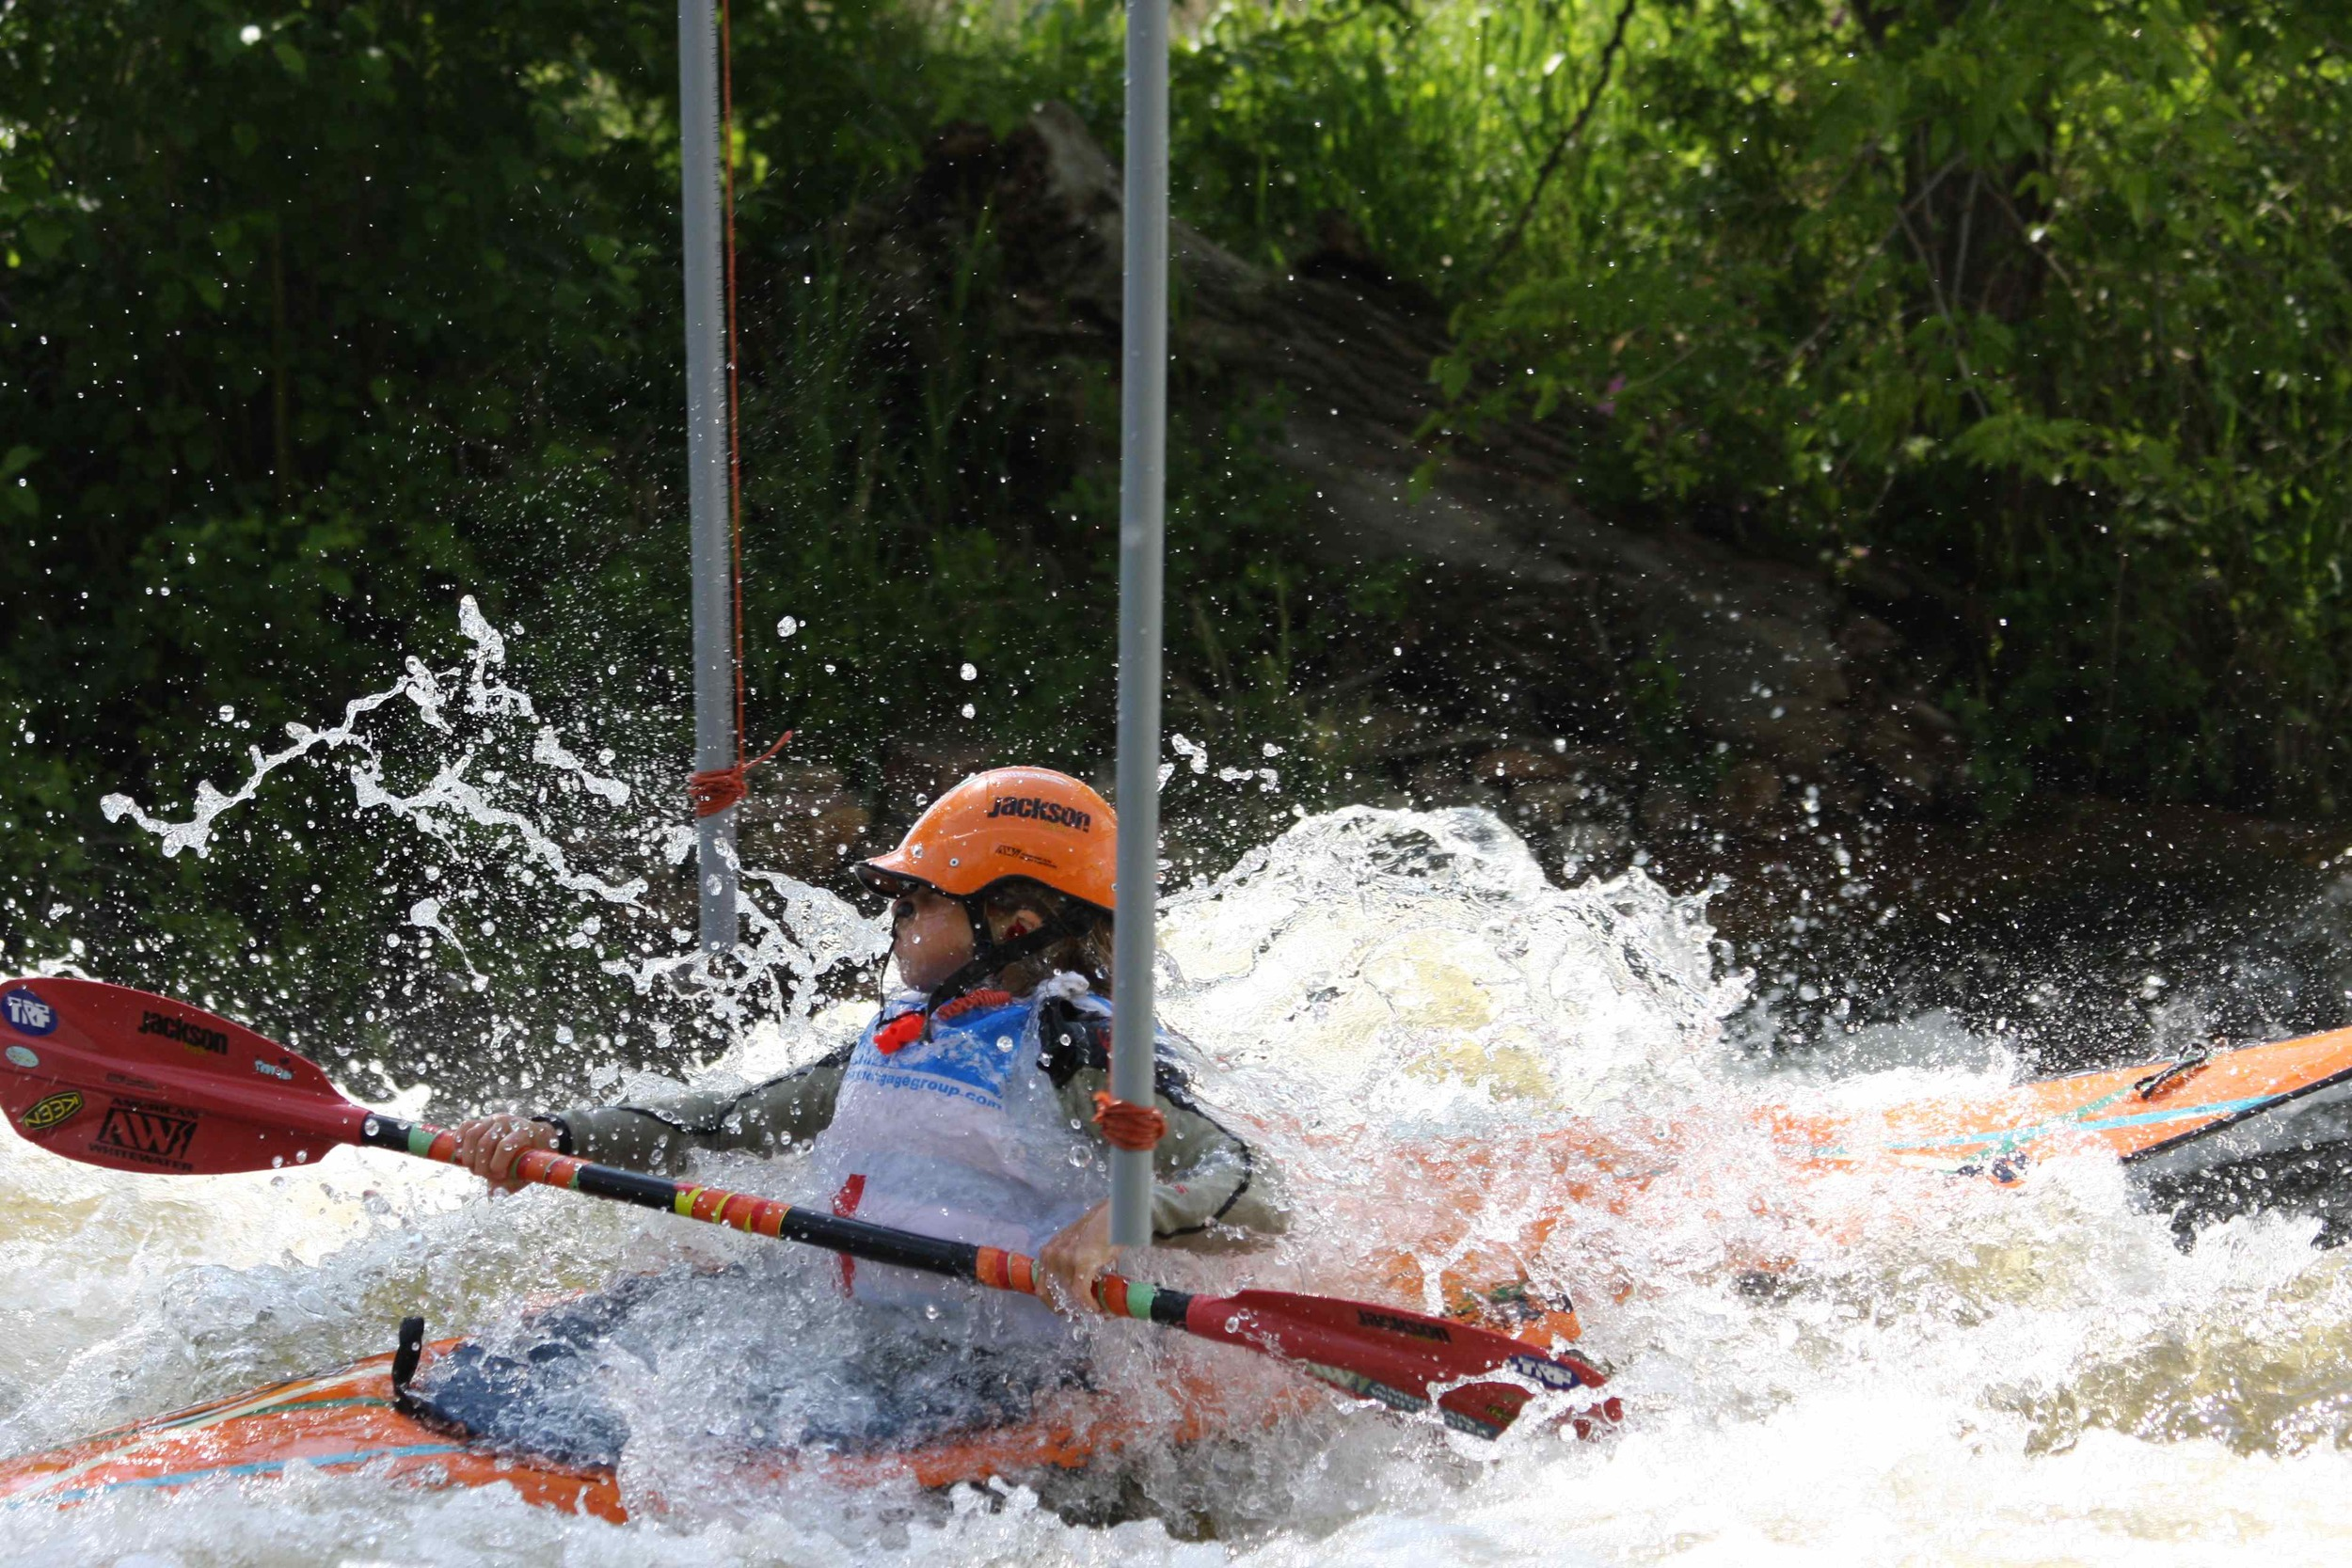 2nd place slalom in Lyons, Co